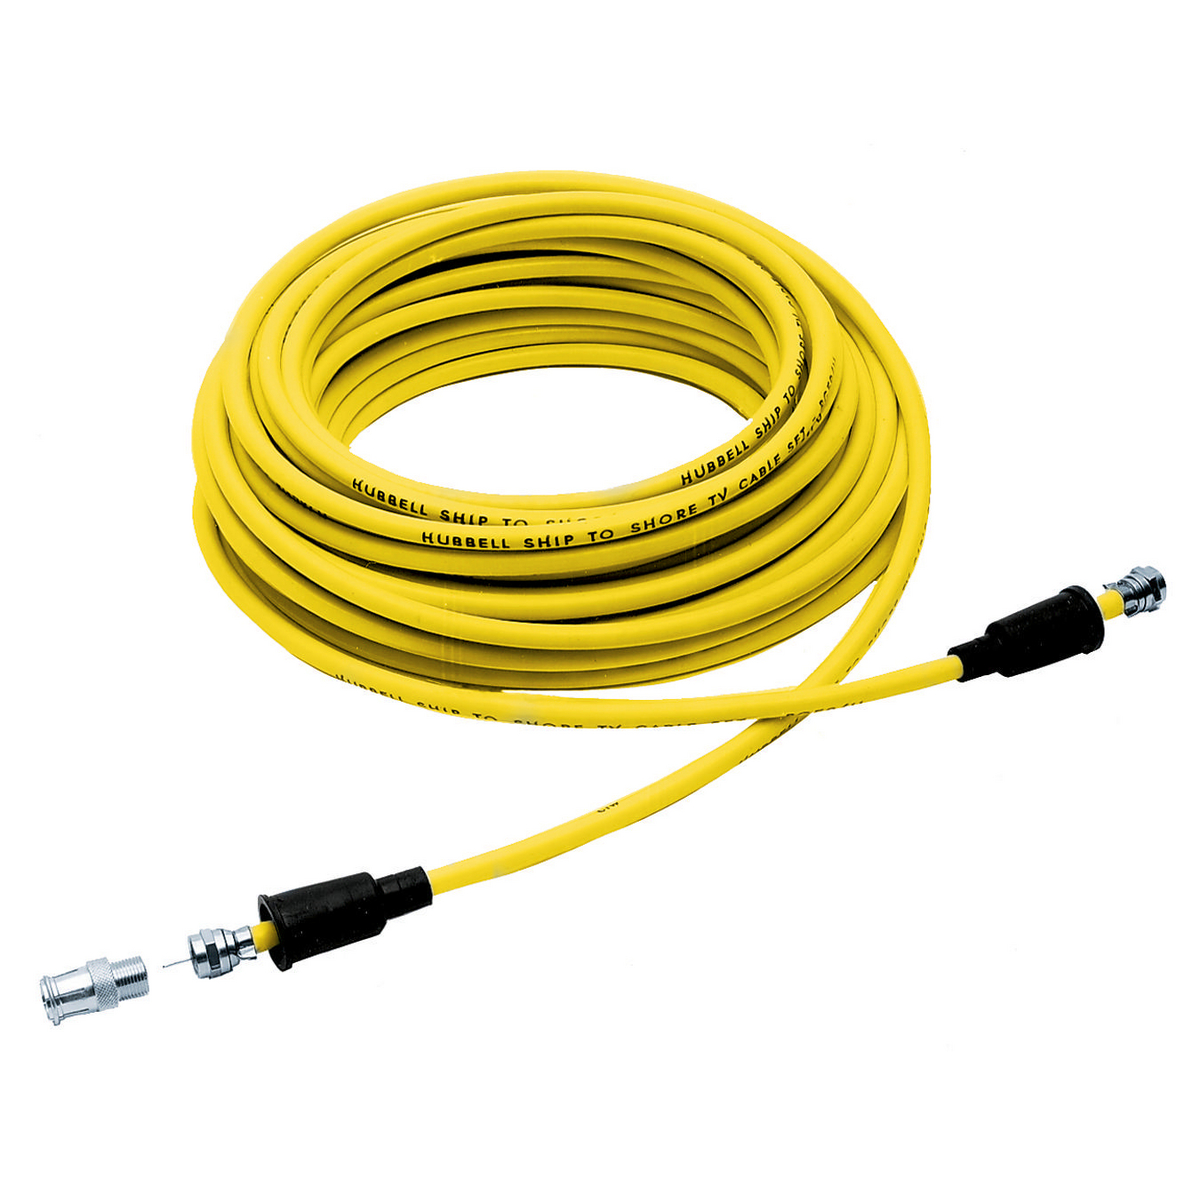 Hubbell TV99 Marine CATV CABLE, 50', YL